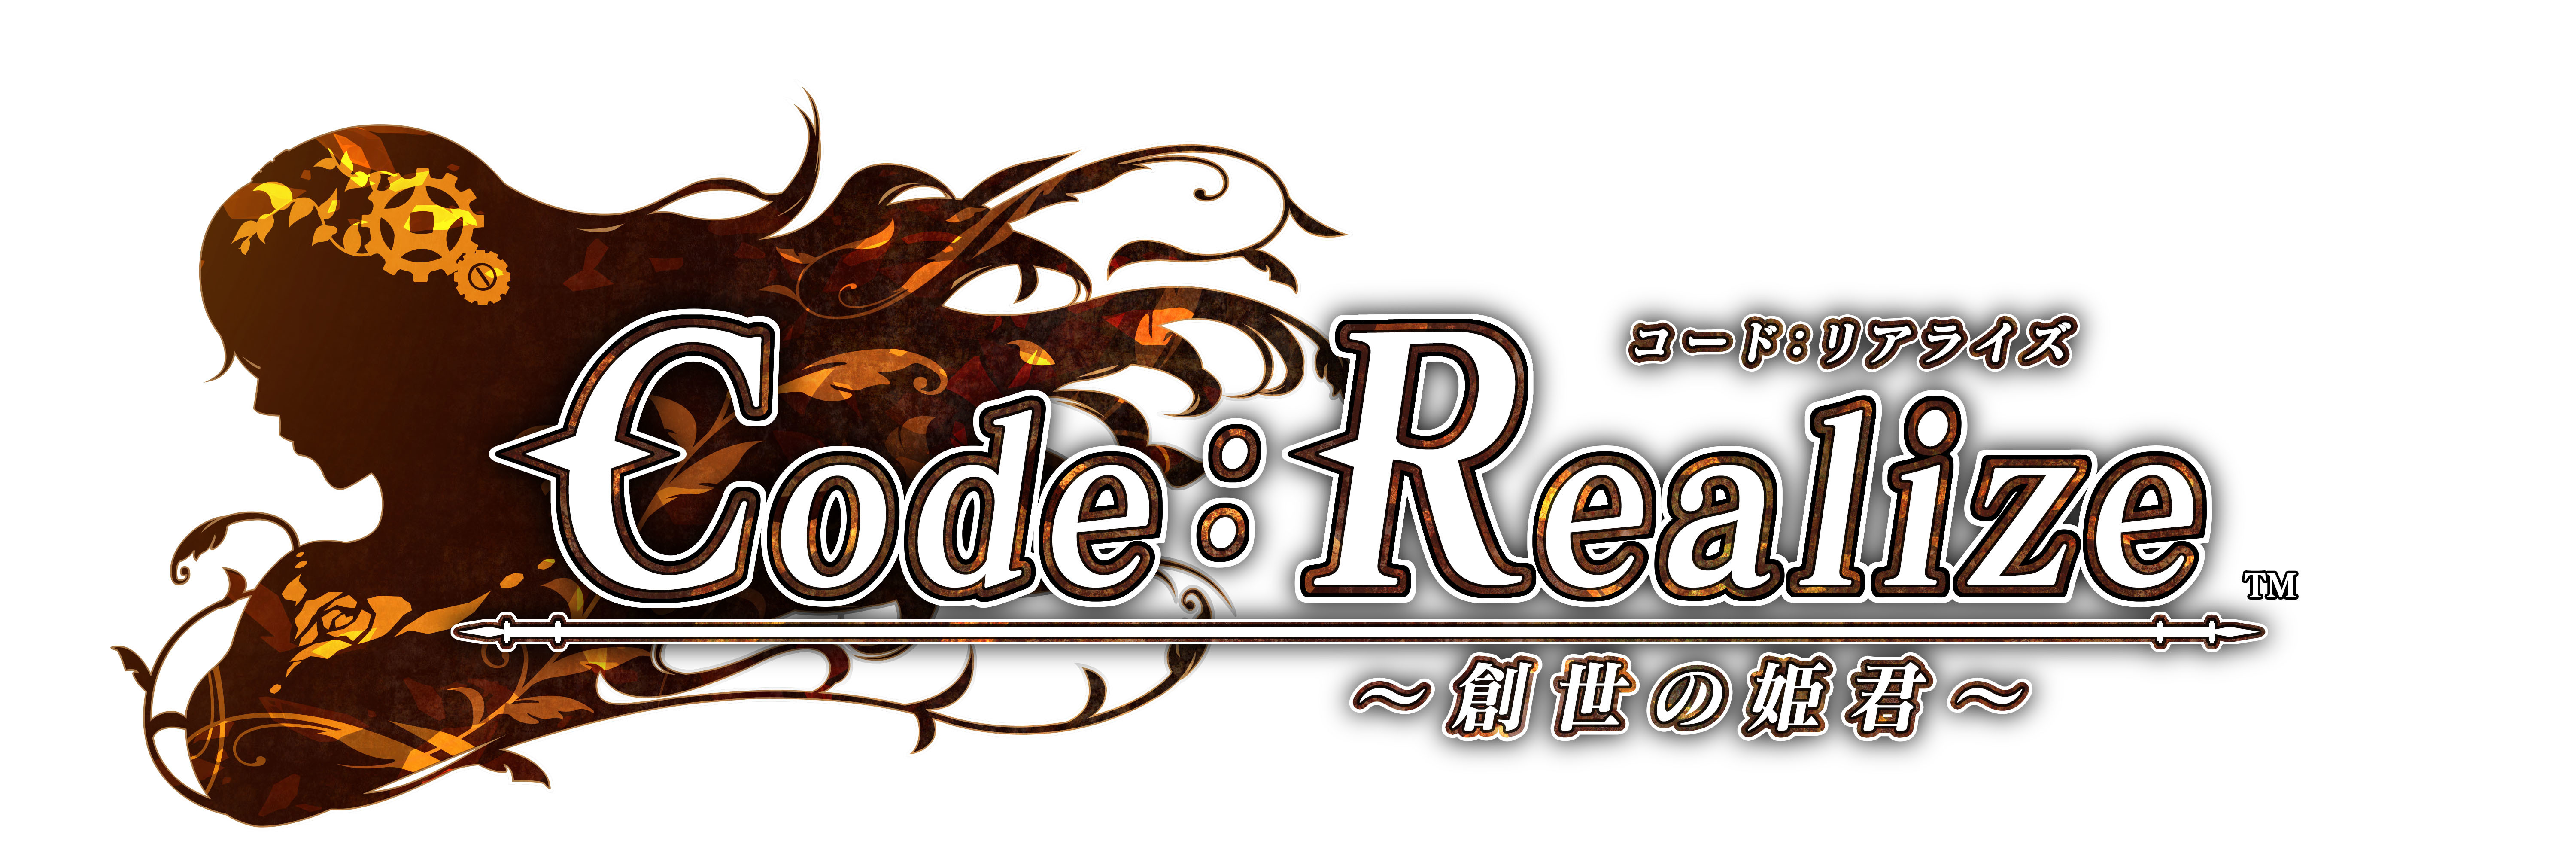 (C)IDEA FACTORY/DESIGN FACTORY ・ Code:Realize PROJECT (C)MUSICAL Code:Realize PROJECT